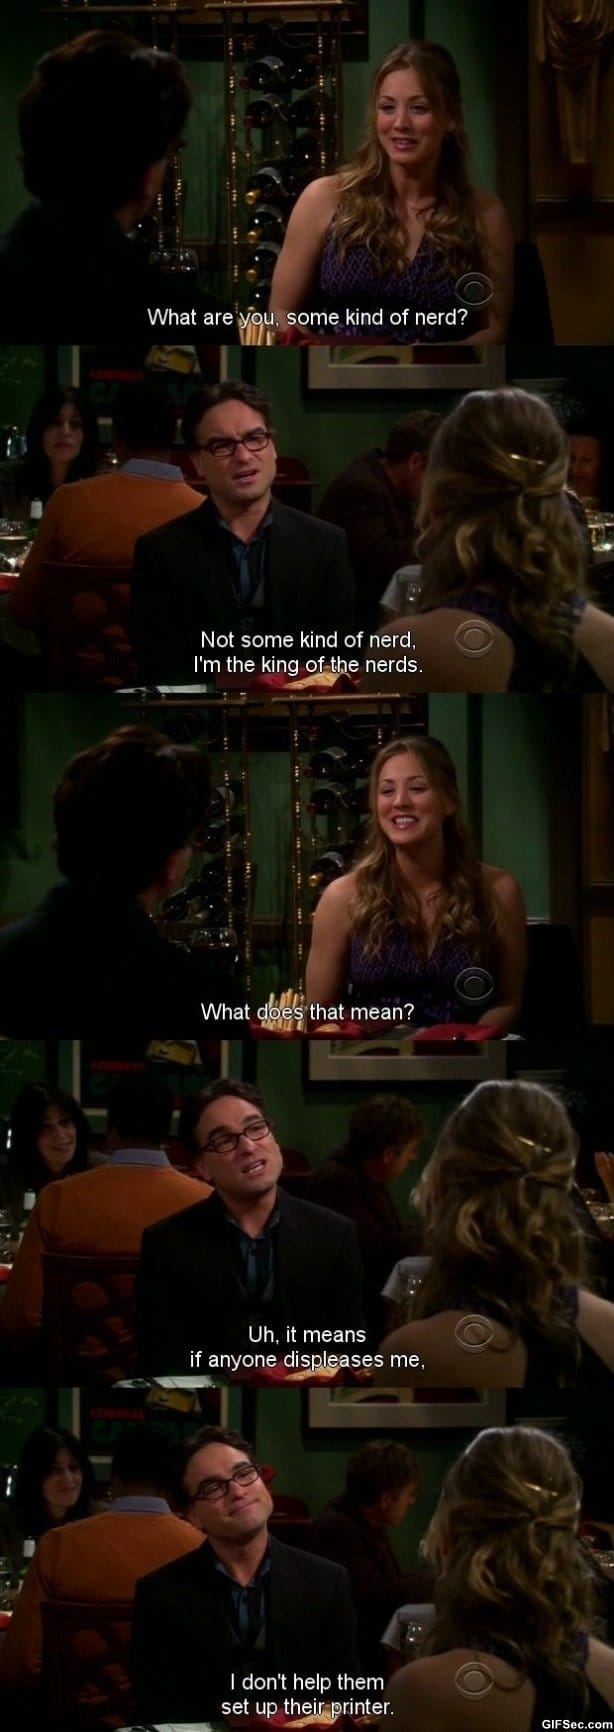 the-king-of-nerds